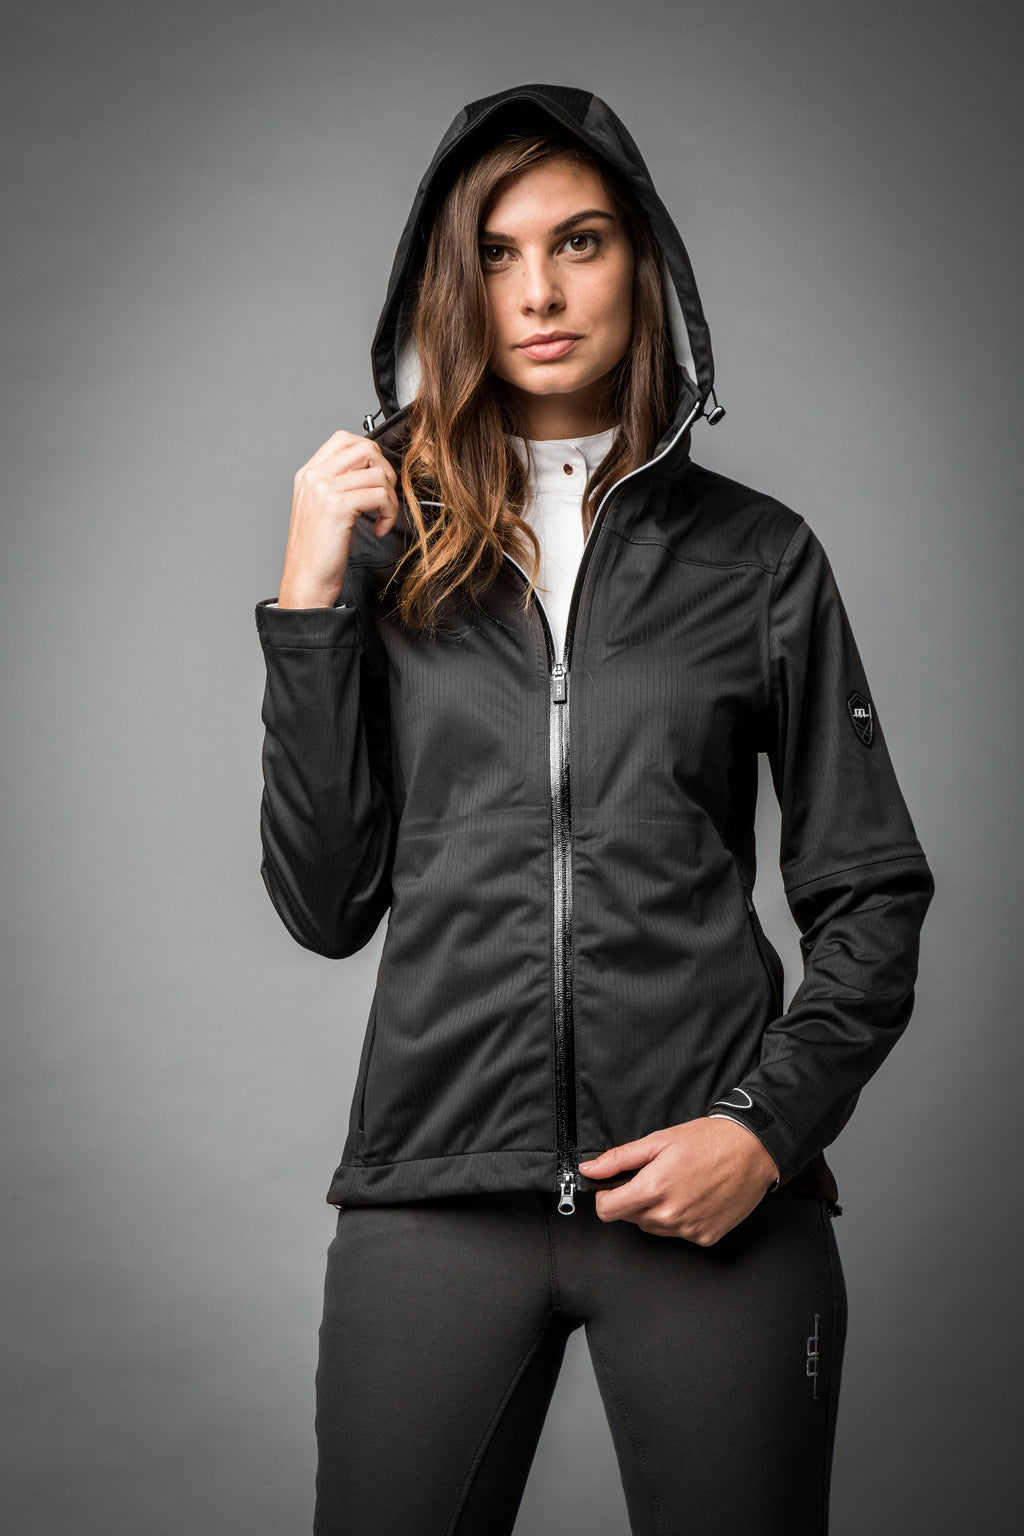 Stay dry and fly with the Horseware Ireland Acqua Ladies Waterproof Jacket!  Waterproof & breathable 3000/3000  / Fully Taped seamed  / 4 ways stretch  Feminine style lines  with a hidden hood with peak visor  2 front pockets with zips  / Two-way central zip closure  Soft Tabs for adjustable cuffs  100% Polyester 3000/3000 knit fabric  Machine washable